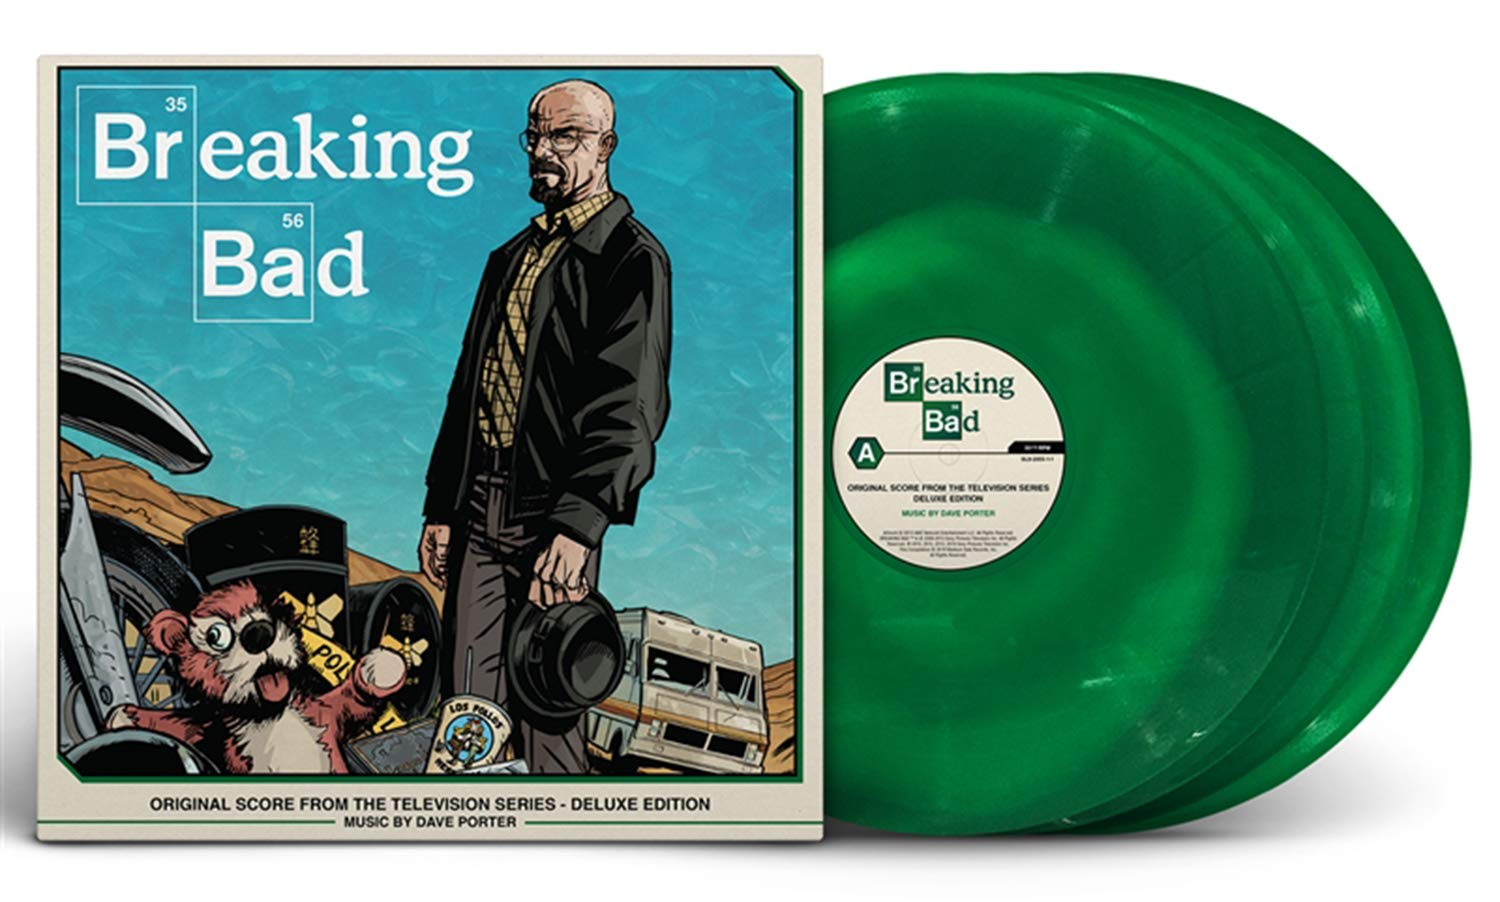 Dave Porter - Breaking Bad: Original Score From The Television Series - Deluxe 4x lp Box Set [ NYCC ''Green Smoke'' Variant] by SPACELAB9